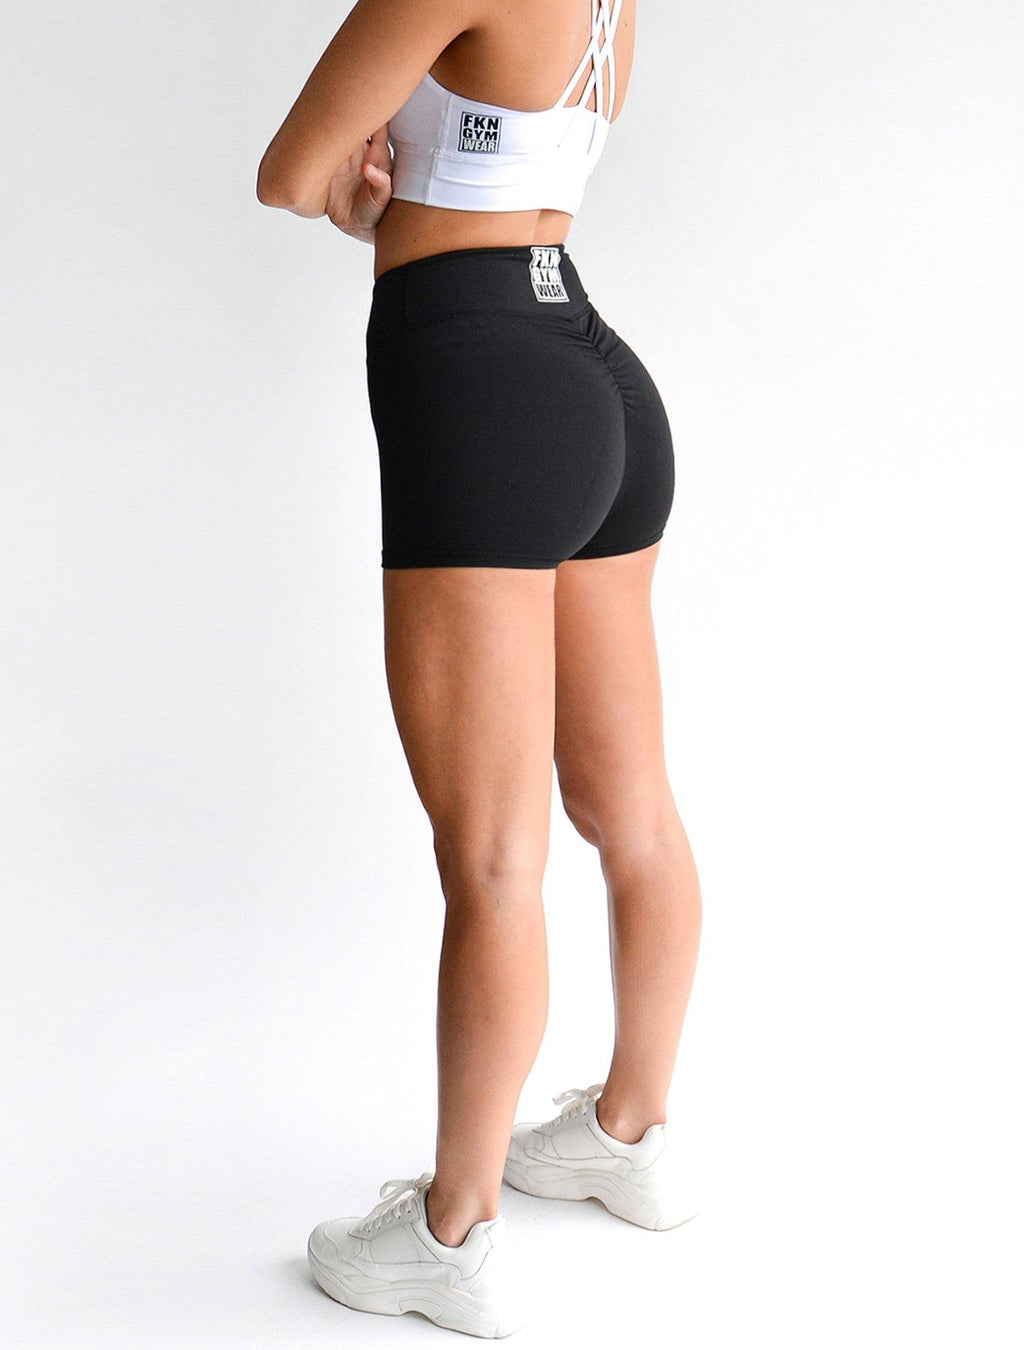 Bandit | Scrunch Bum Gym Shorts - FKN Gym Wear